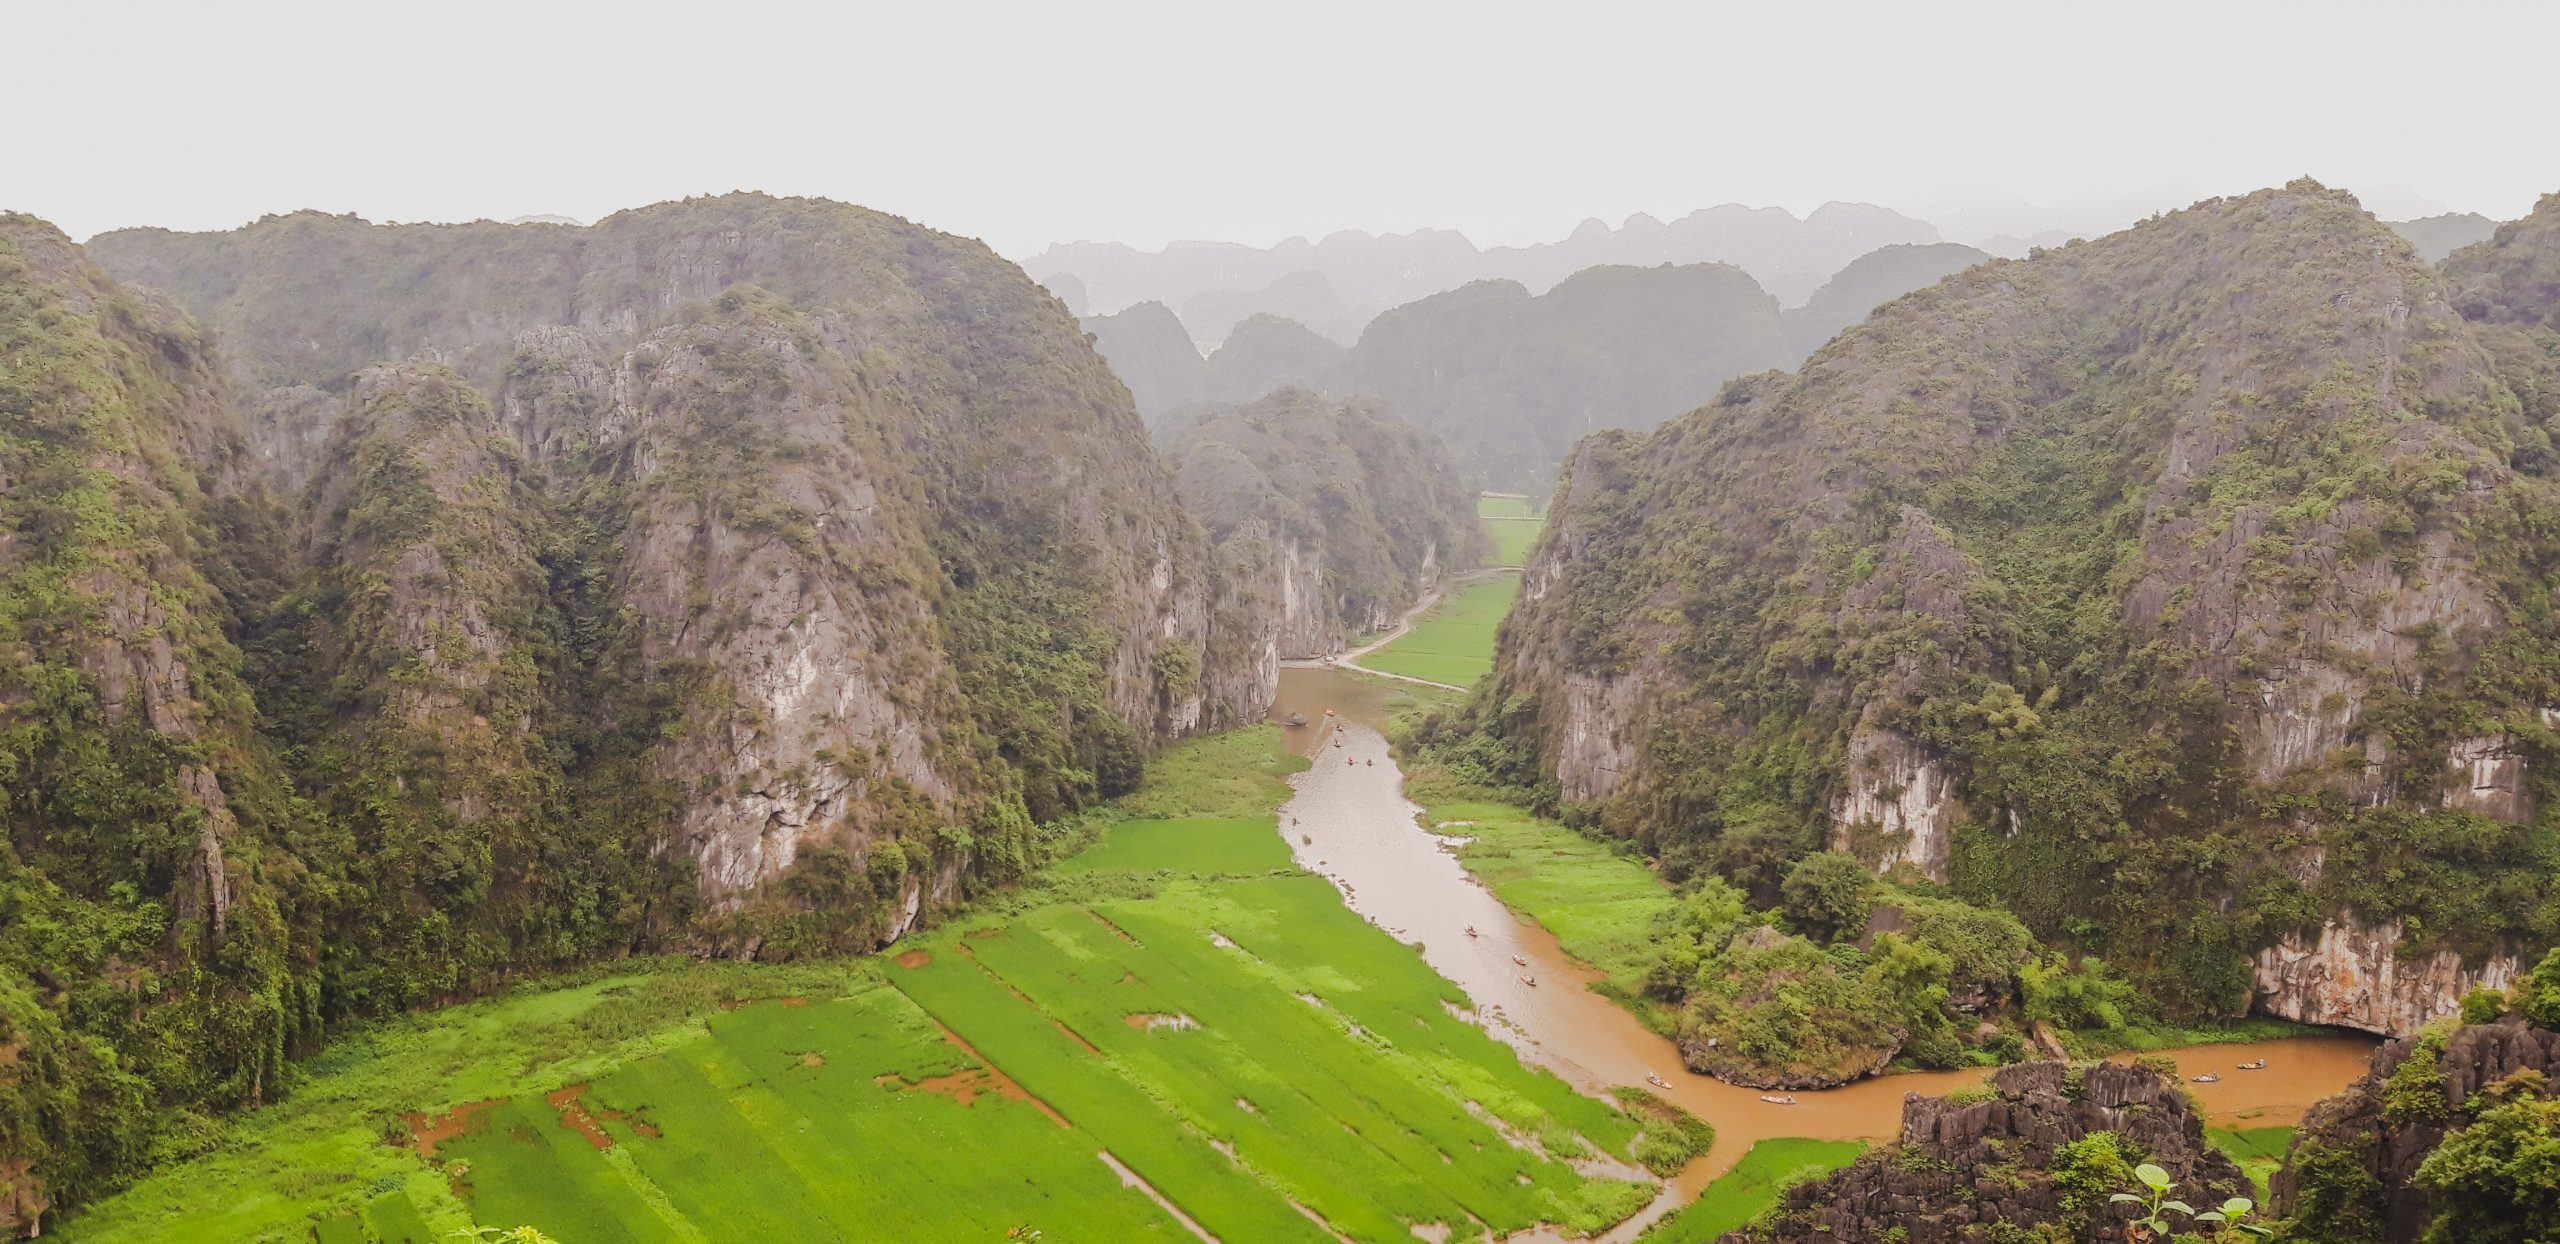 Through Tam Coc and Ninh Binh rice fields by bicycle